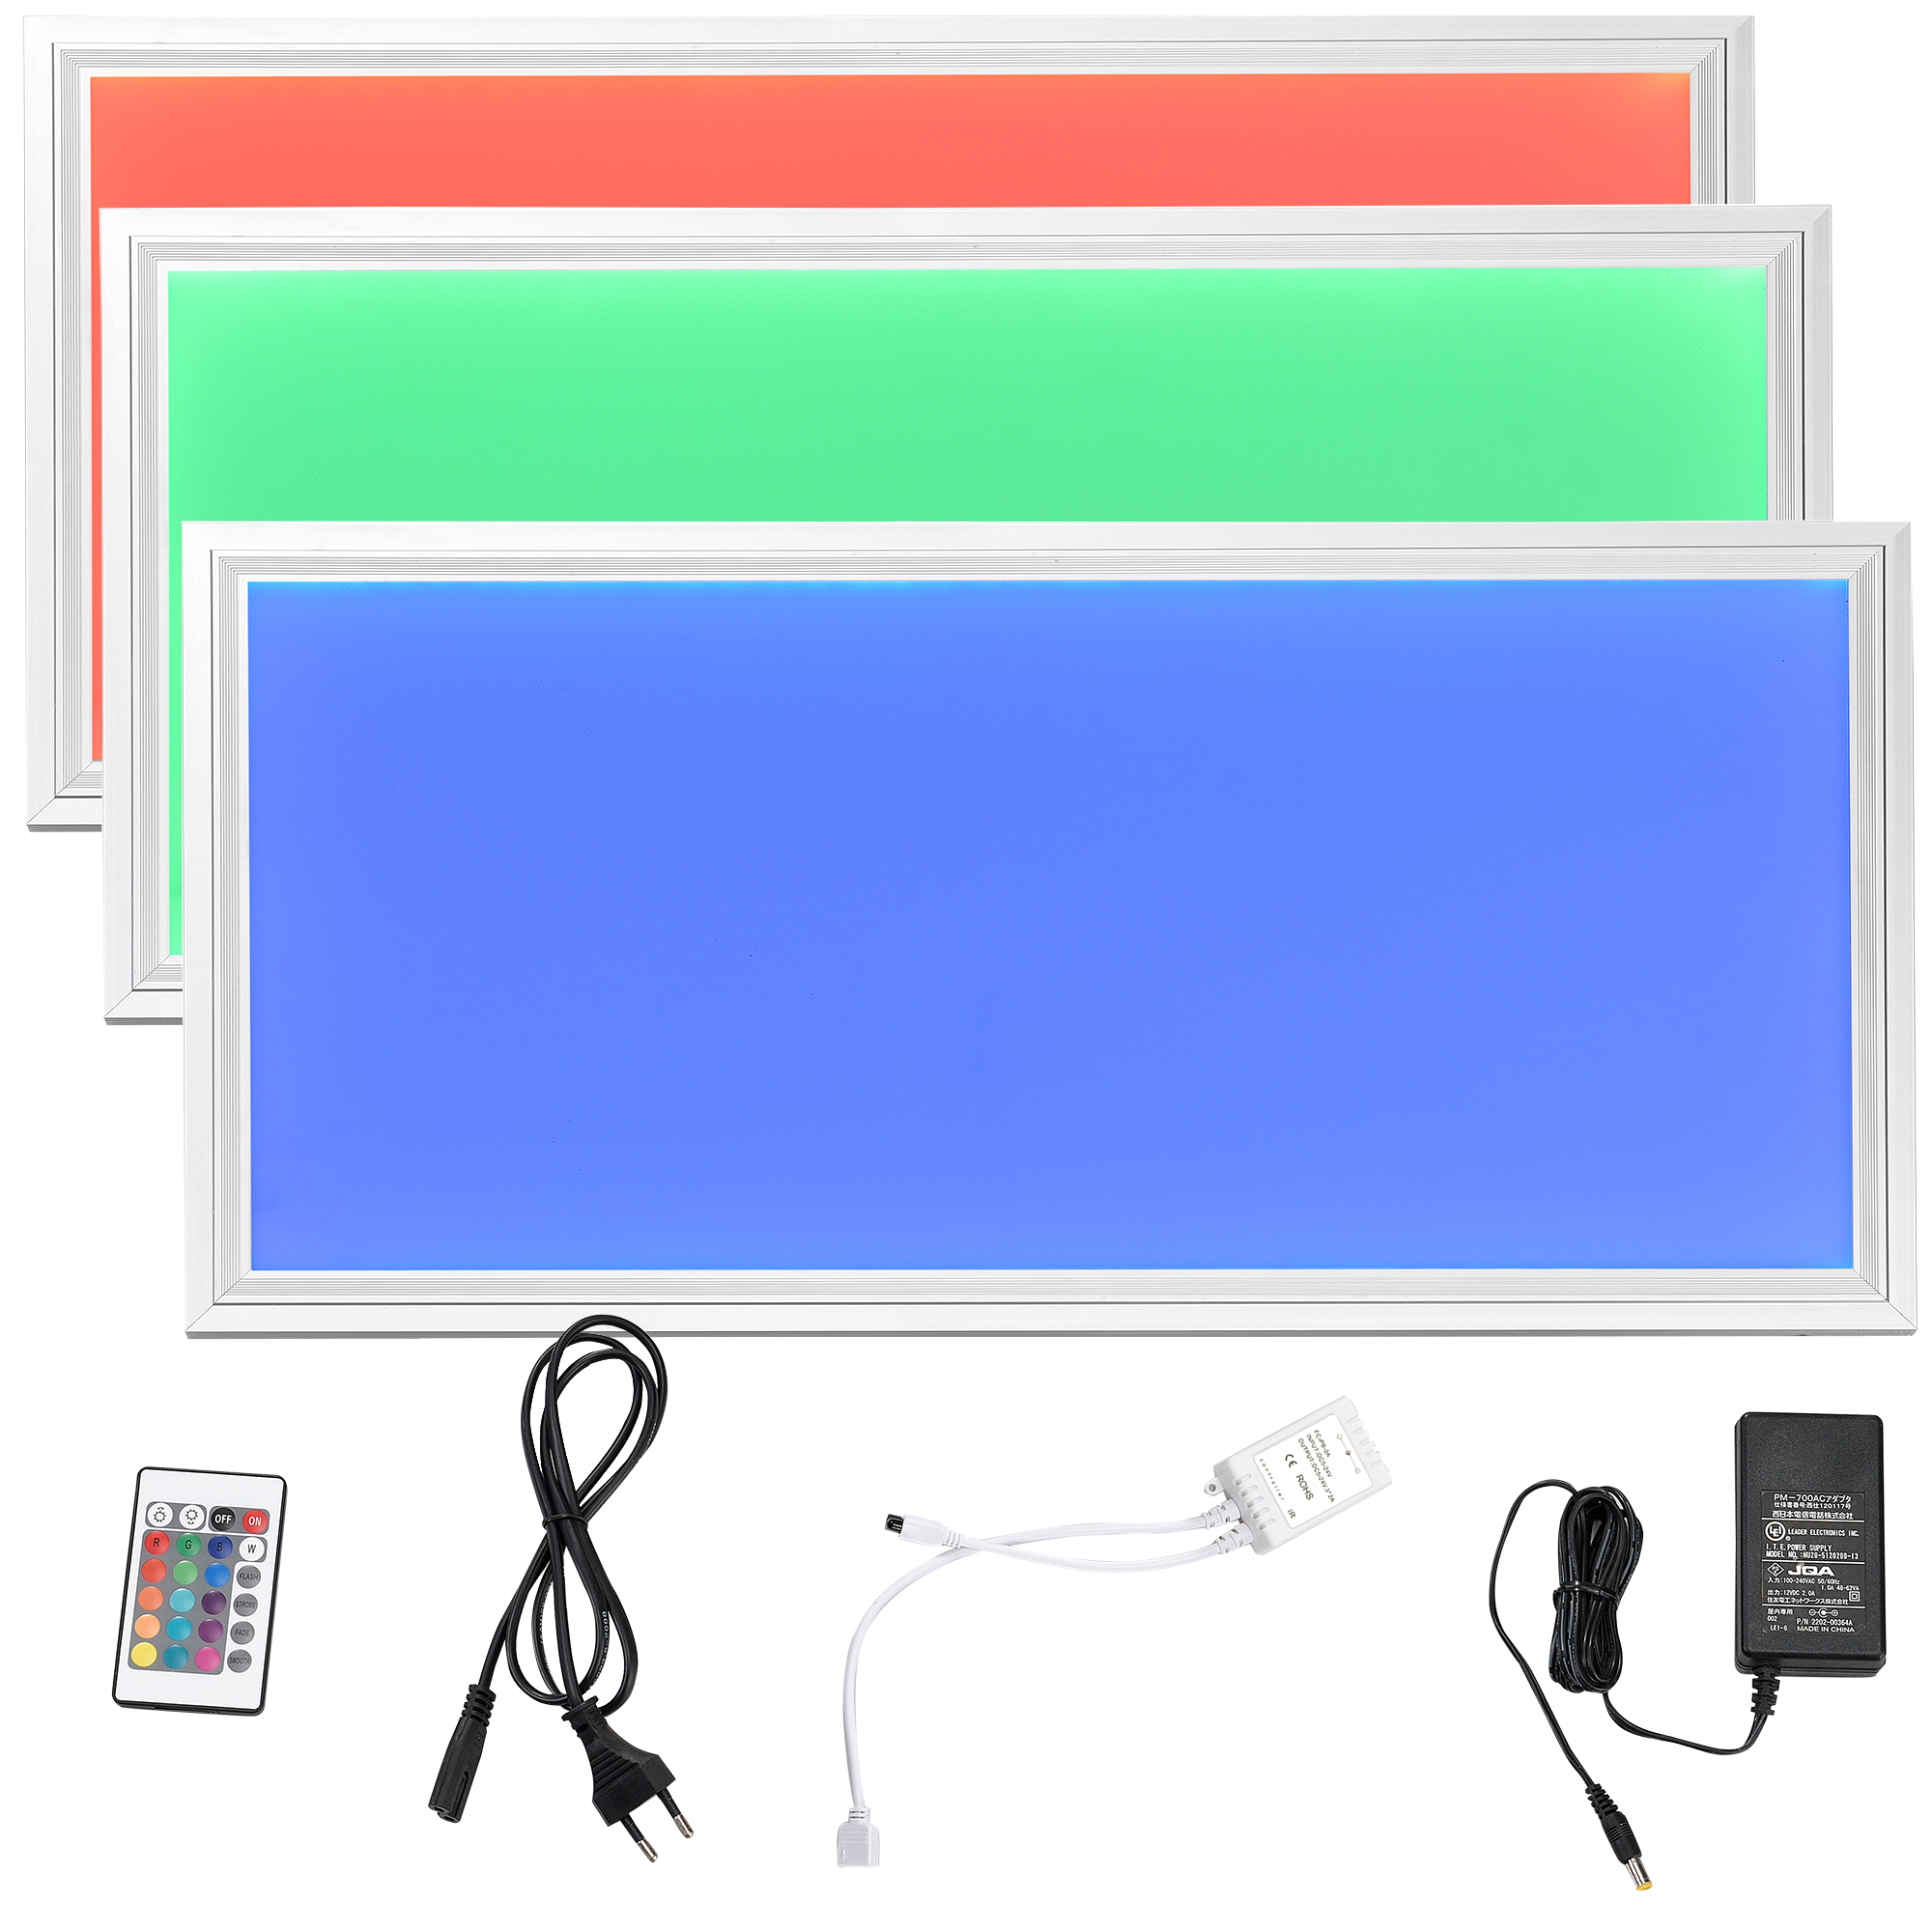 LED-Panel_HLD5502_vorschau Wunderbar Led Panel Rgb Dimmbar Dekorationen